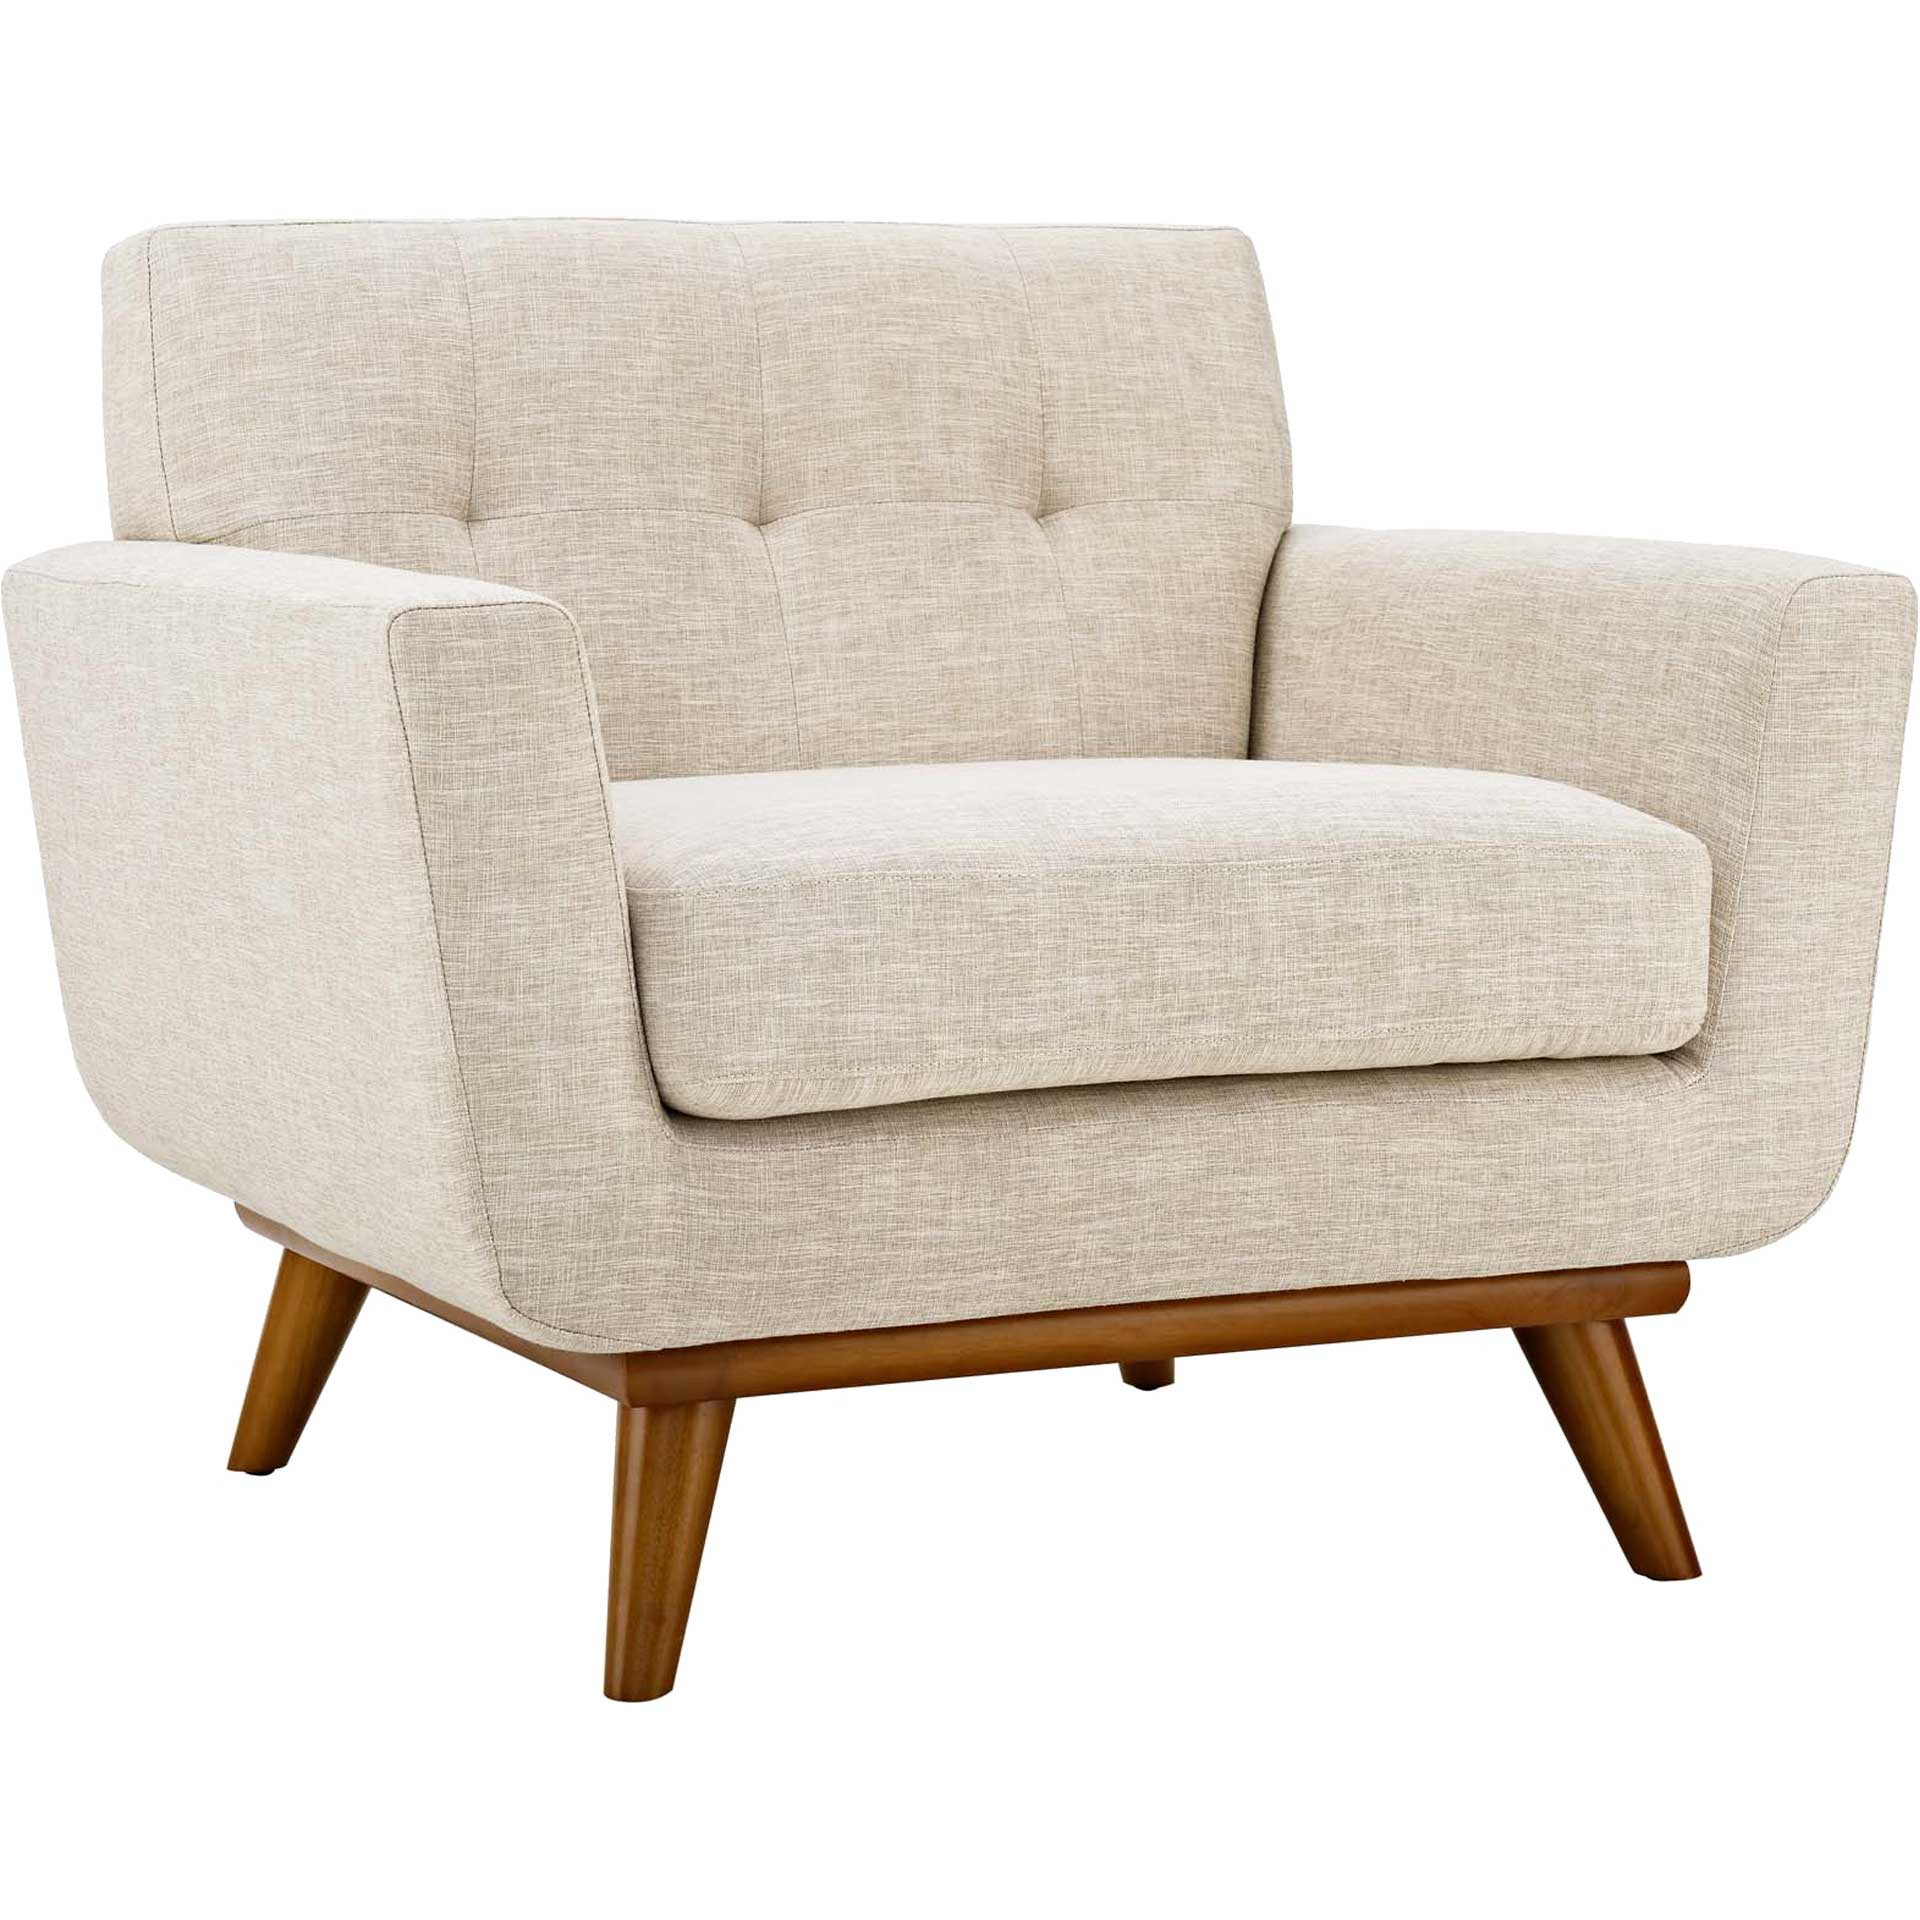 Emory Upholstered Armchair Beige